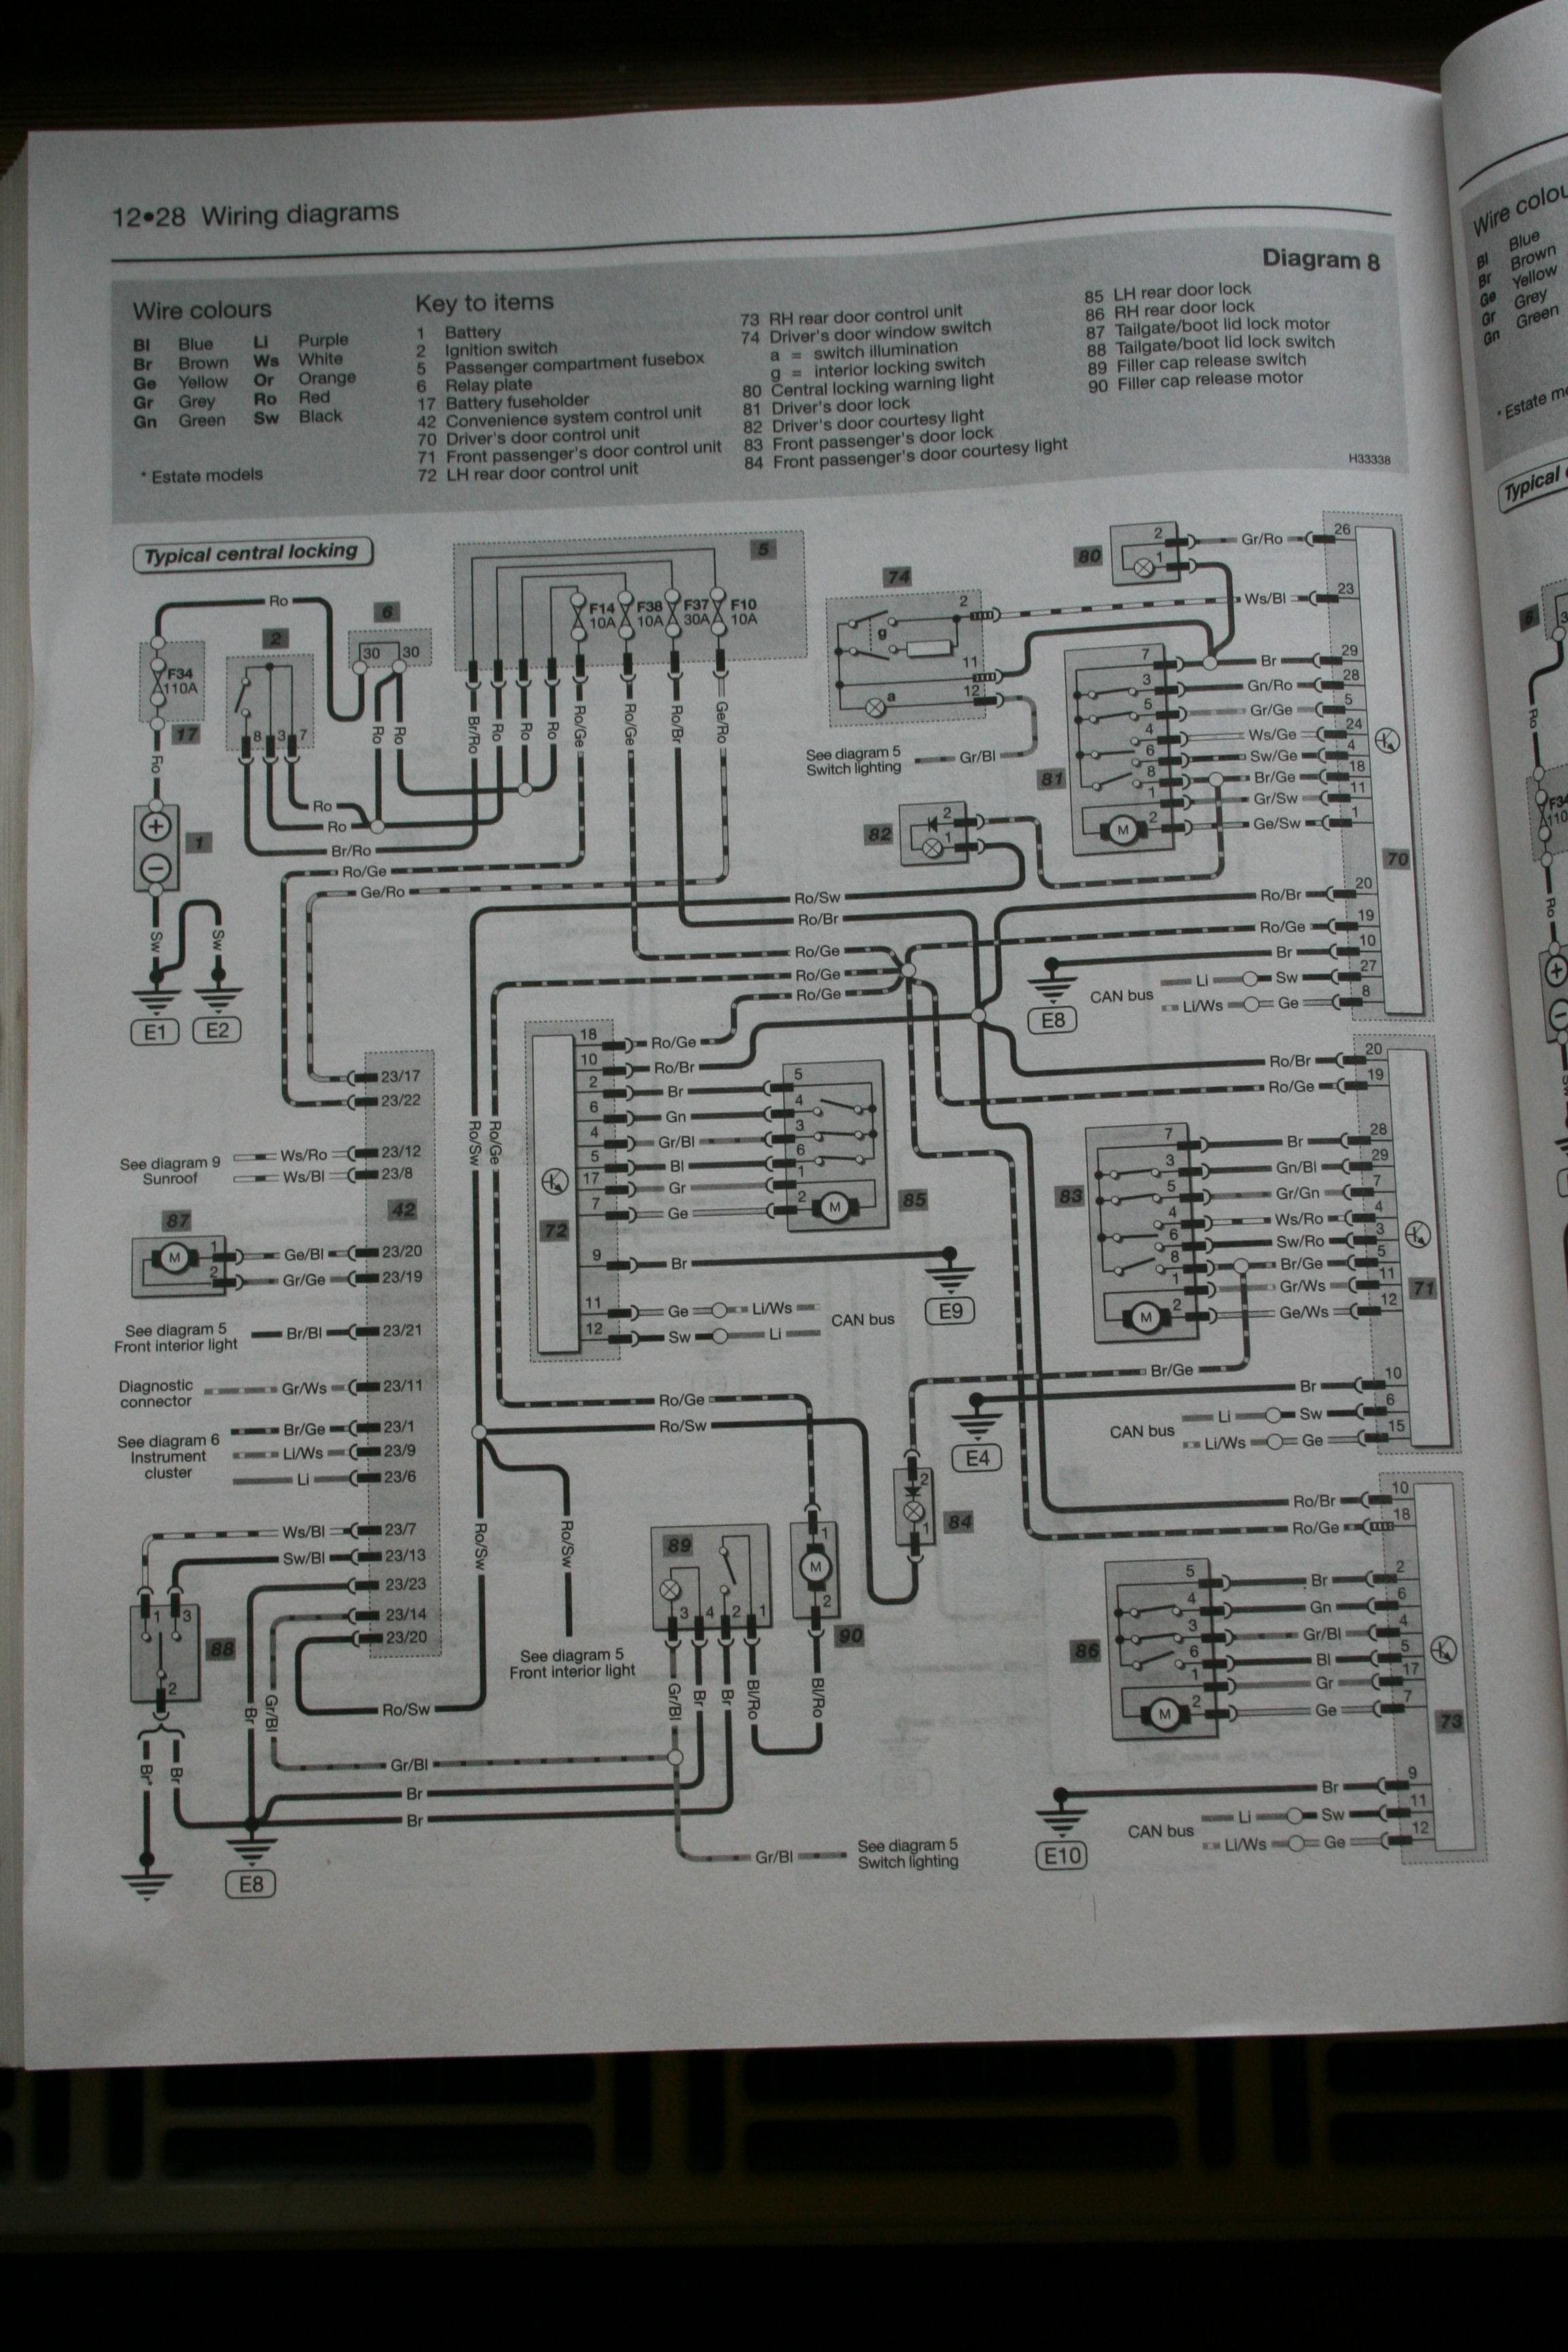 DIAGRAM] Skoda Octavia Cooling Fan Wiring Diagram FULL Version HD Quality Wiring  Diagram - DIAGRAMXEDRO.CUCITOCREATIVOFACILE.ITcucitocreativofacile.it